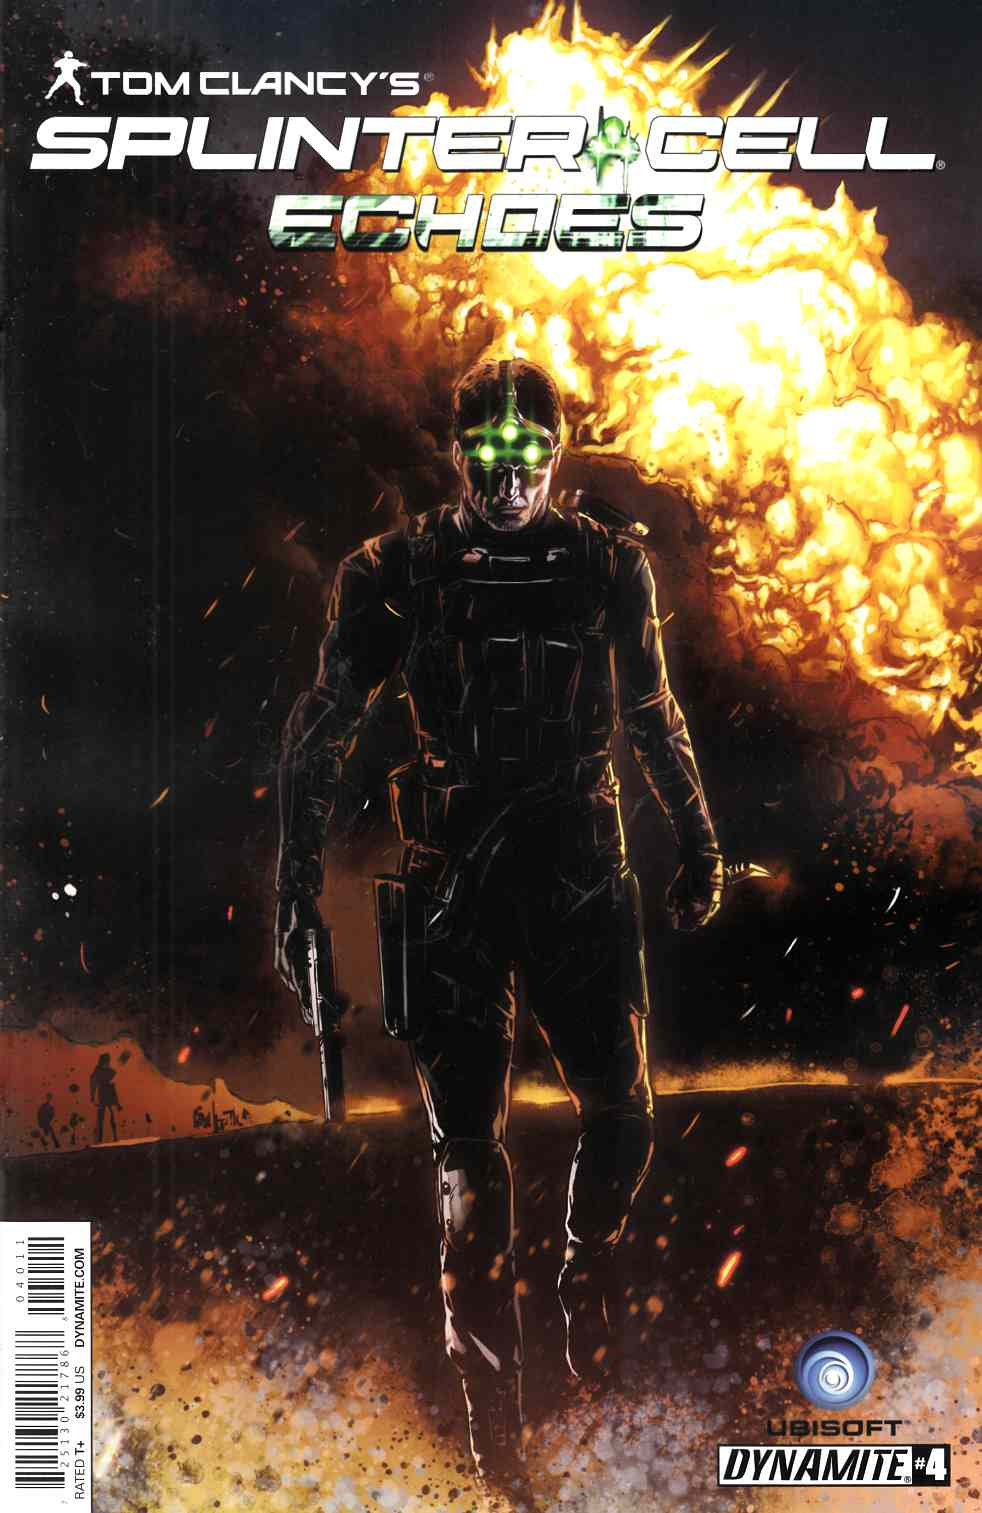 Tom Clancy Splinter Cell Echoes #4 [Comic] THUMBNAIL